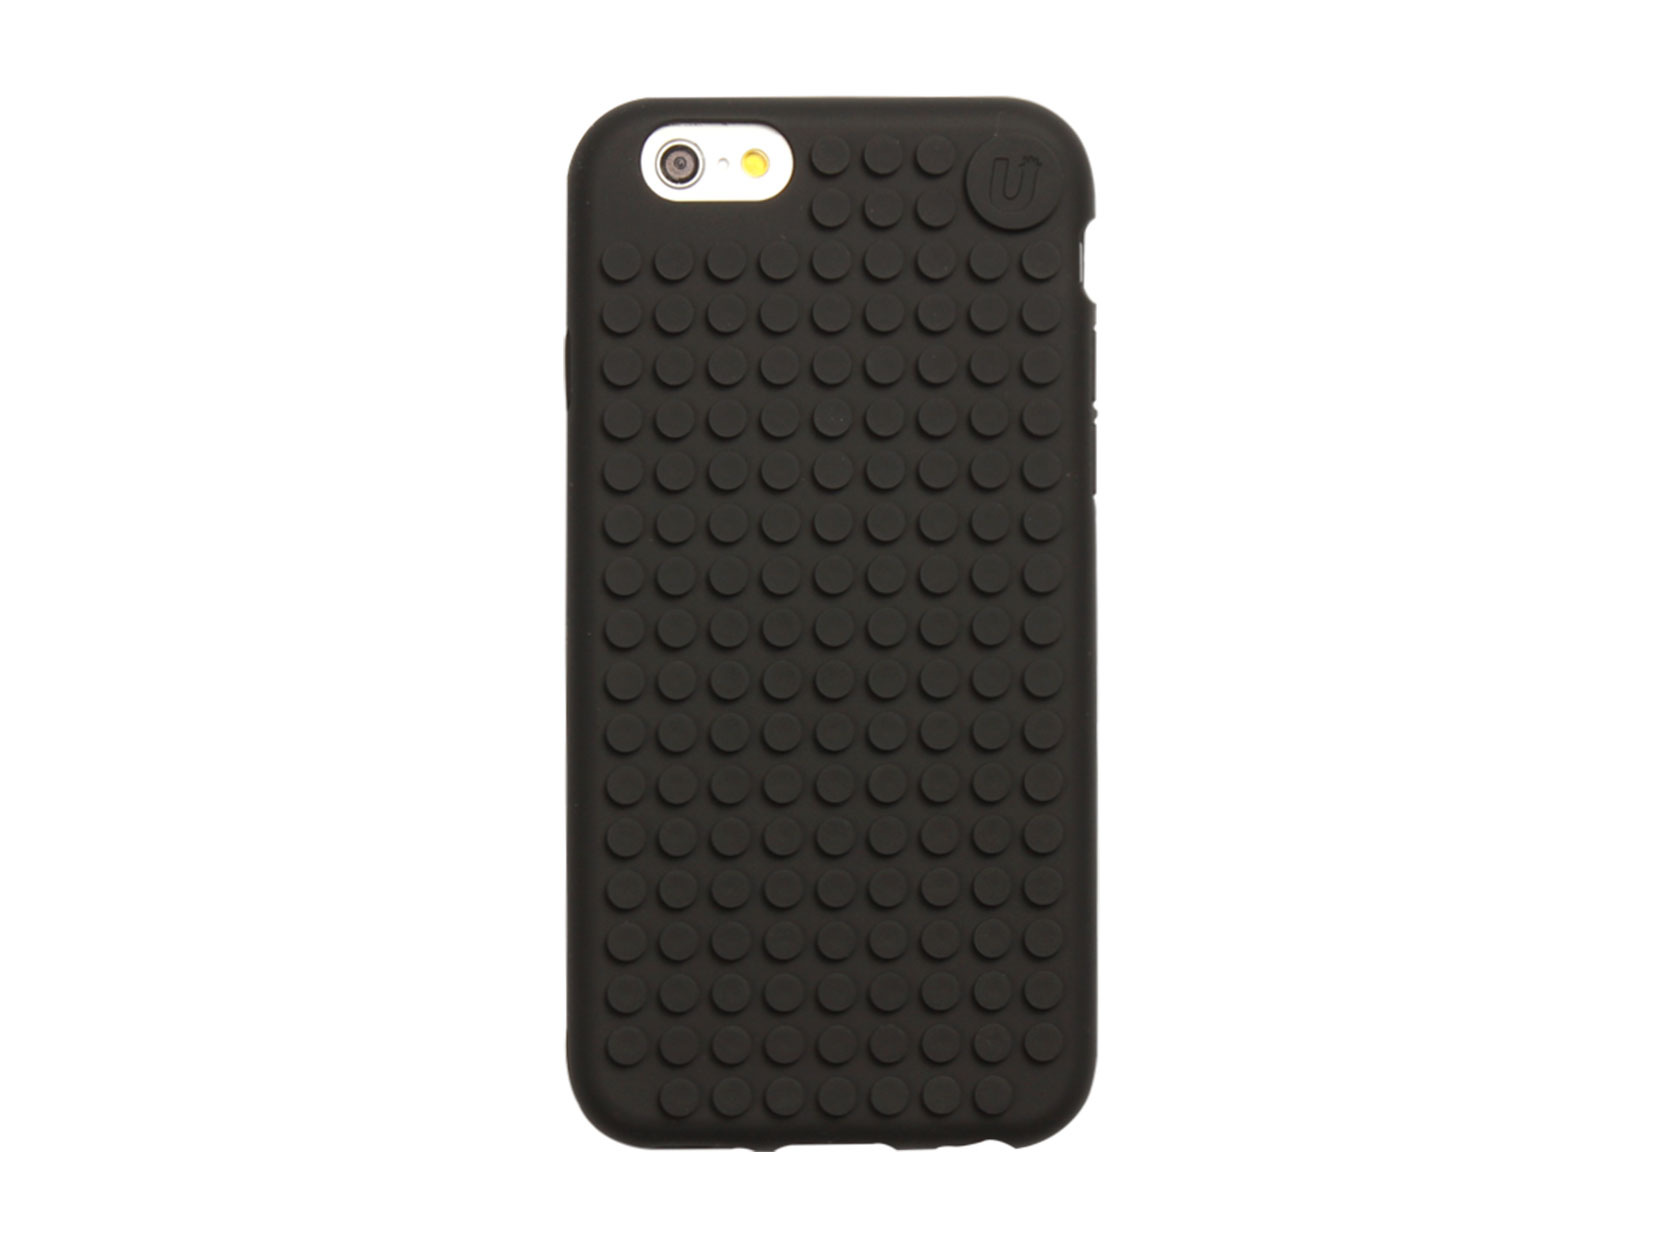 COVER P/CELULAR WY-C006 IPHONE 6/6S NEGRO